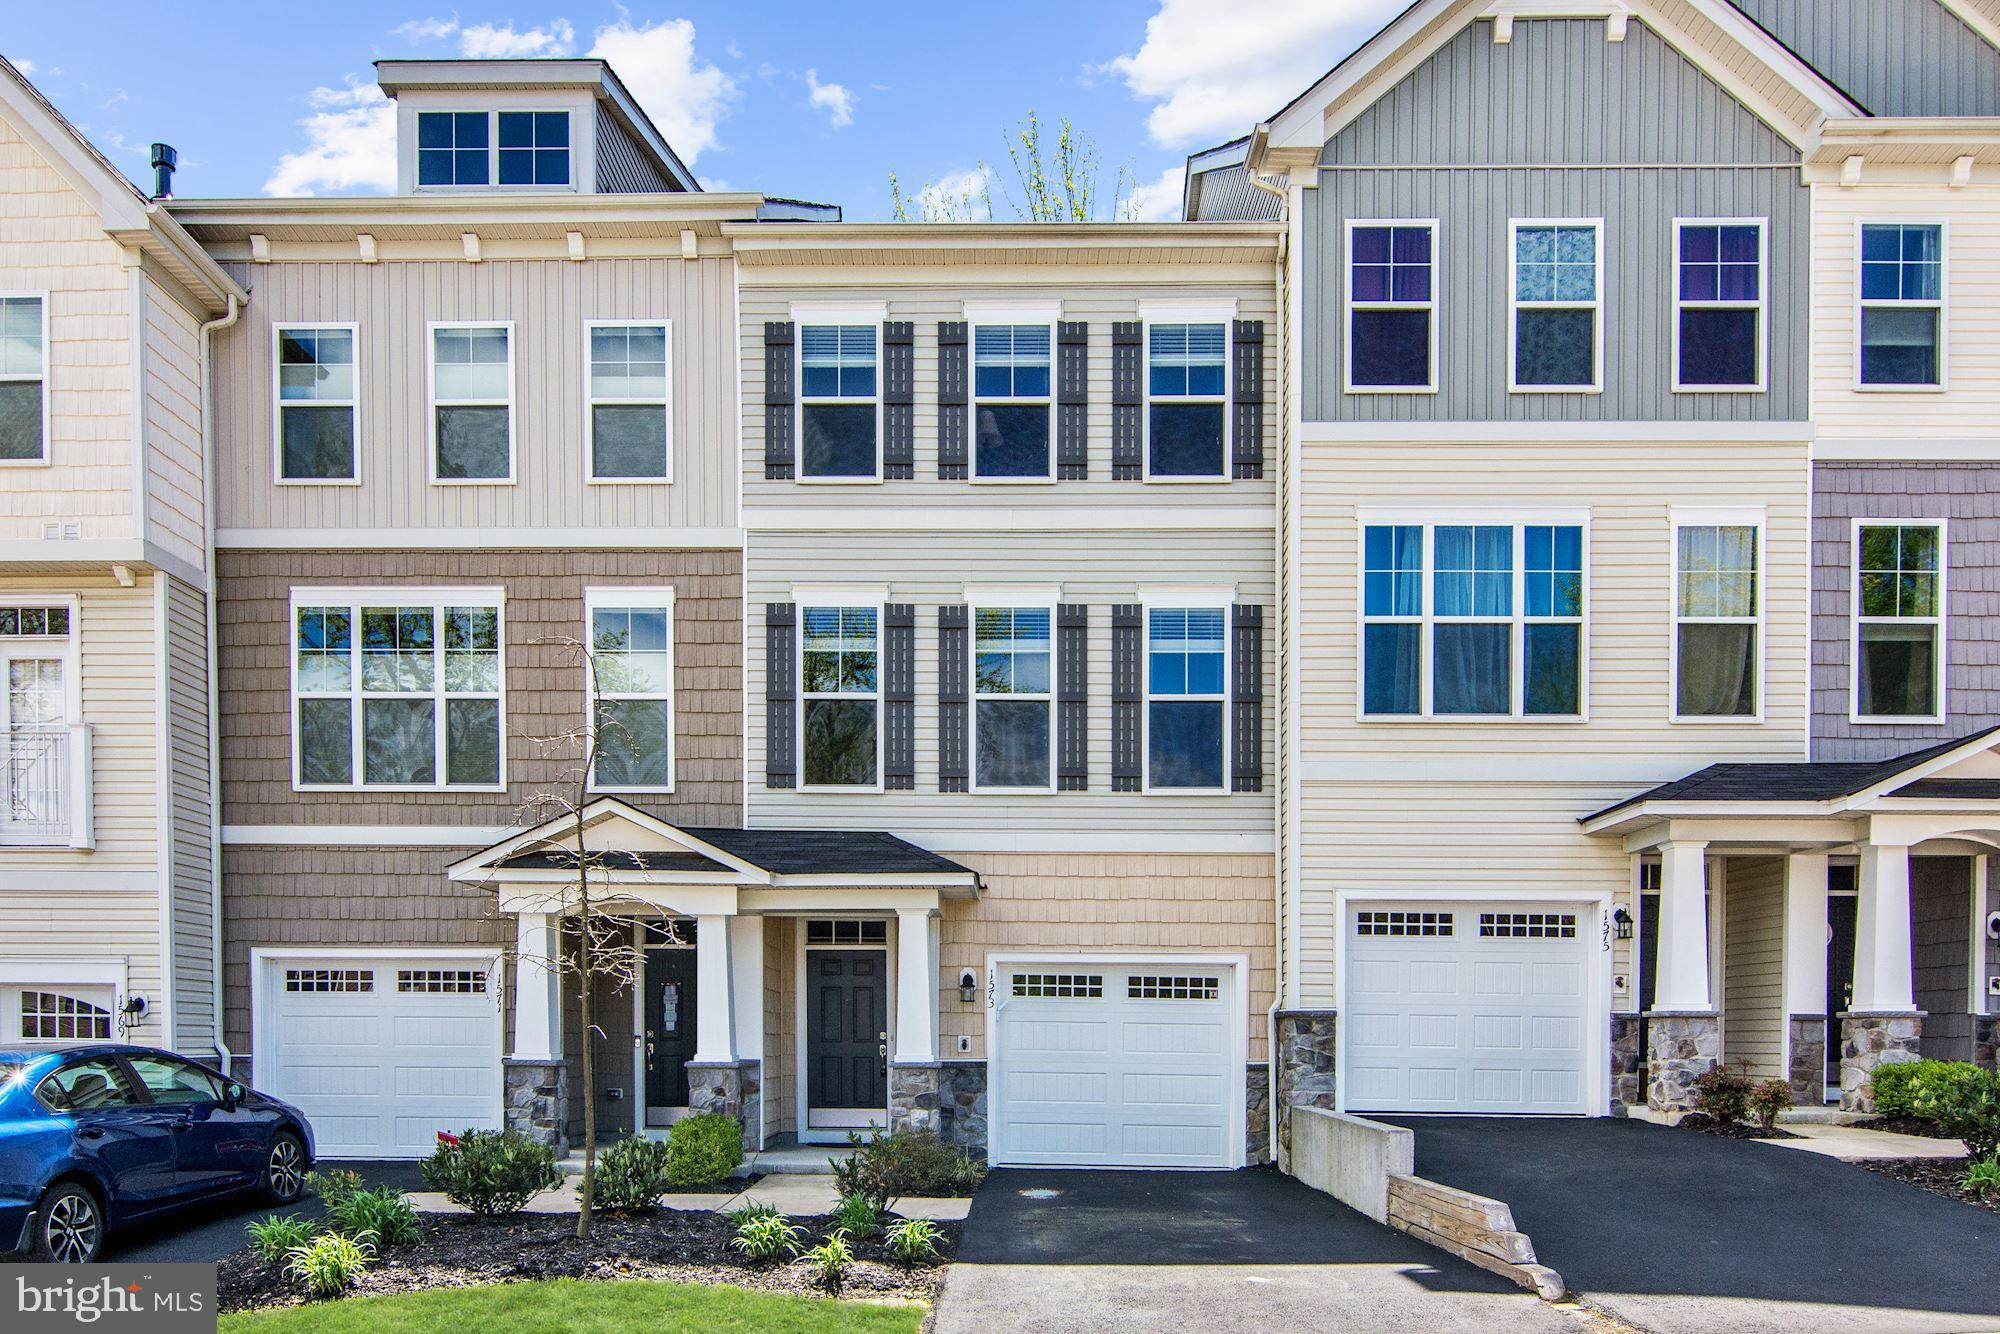 Meticulously maintained 4-year young 1 car garage condo/townhome in desirable Potomac Crest! Features include beautiful hardwood floors throughout the open main level, custom built-in~s, 9 ft ceilings and 2 private decks! The kitchen is a chef~s dream boasting stainless steel, granite, island, breakfast bar and opens to both a cozy sitting area with fireplace and formal dining/living room perfect for entertaining.  Enjoy the well-appointed master suite with a walk-in closet and en suite bath with dual vanities. 2 additional bedrooms upstairs share a bathroom plus laundry for added convenience.  1st level floor with potential for bonus room, full bath and second private deck overlooking wooded area.. Just minutes to VRE/commuter lots, Rt 123/I95, historic Occoquan, shopping, dining & parks